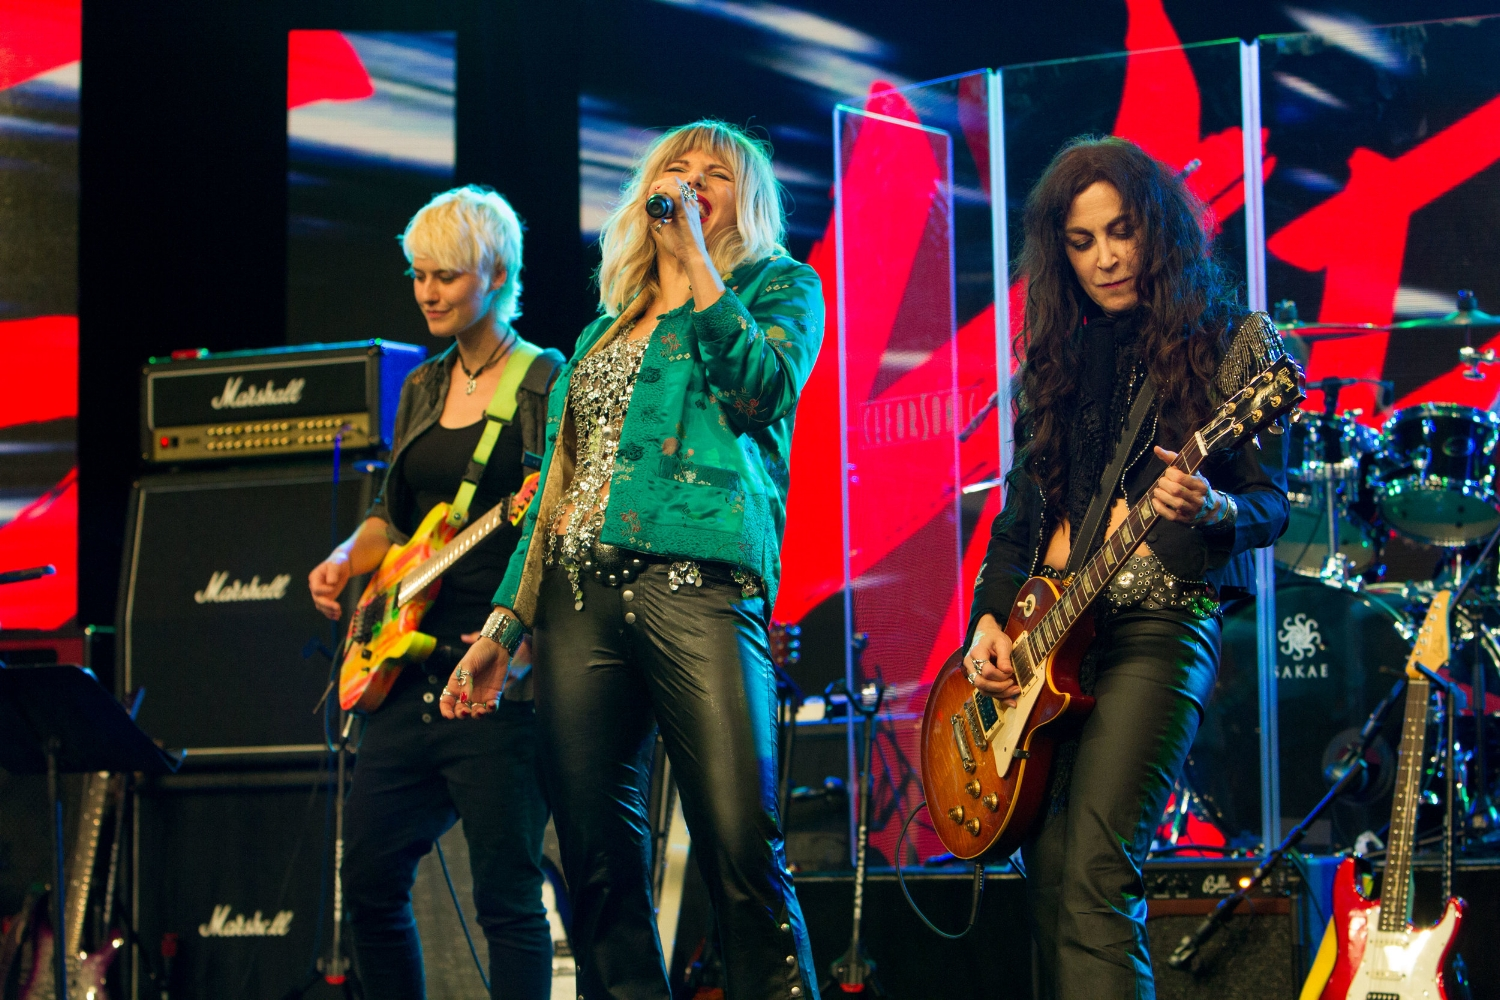 Marlain Angelides with Steph Paynes, Lez Zeppelin and Yasi Hofer